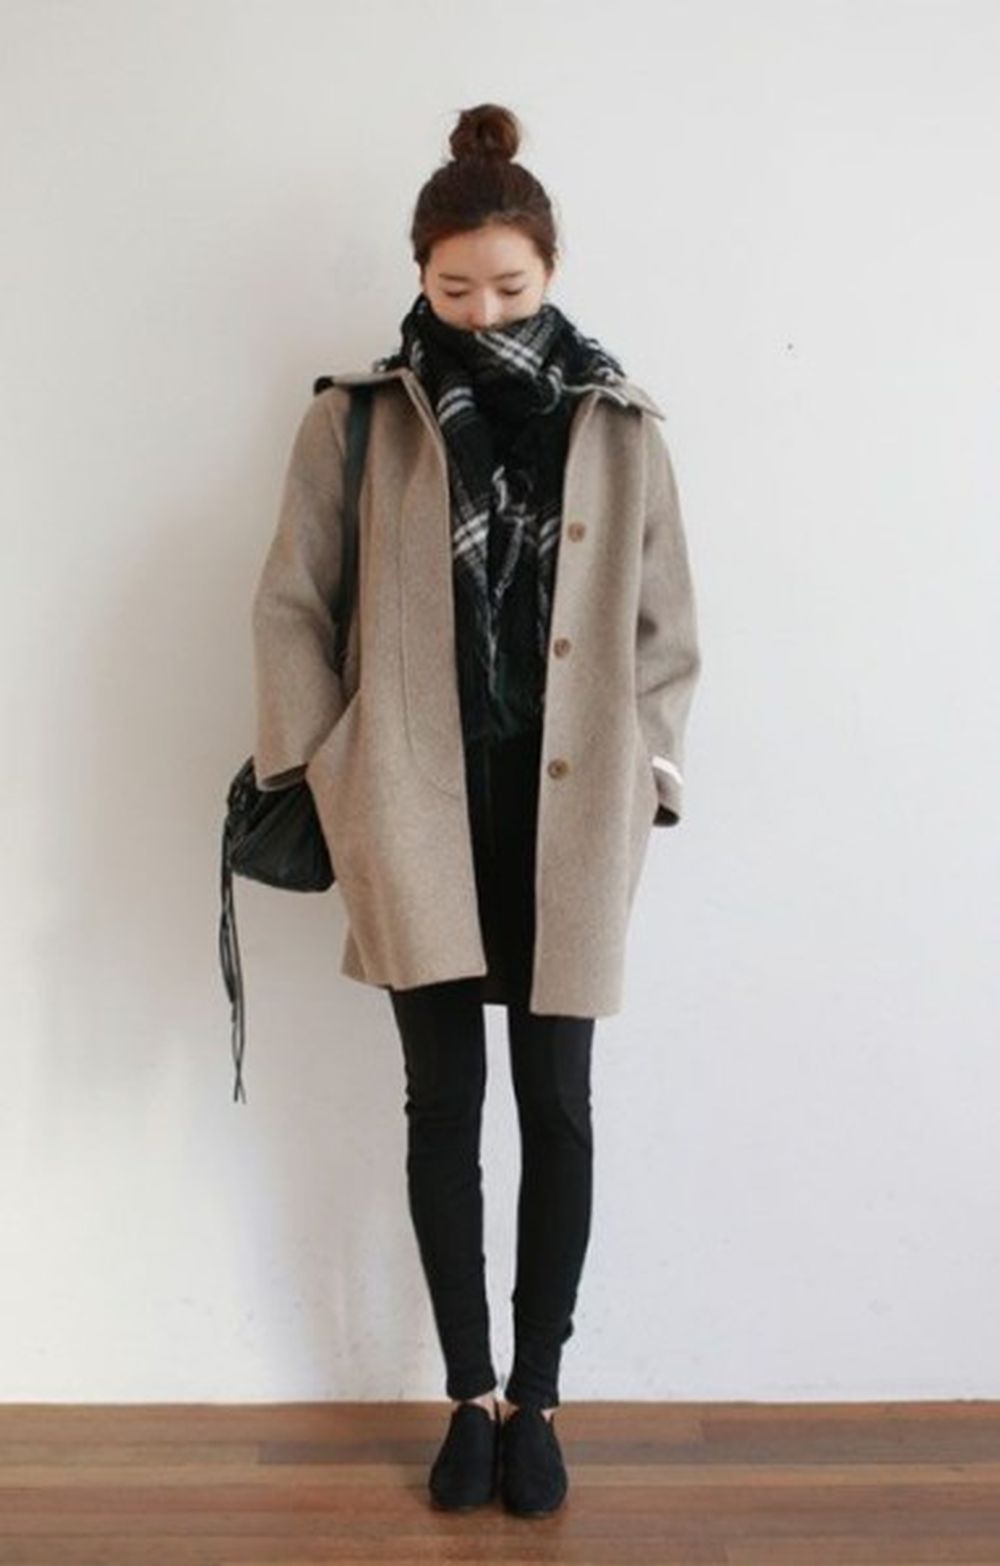 Fashionable scarves for winter outfits 109